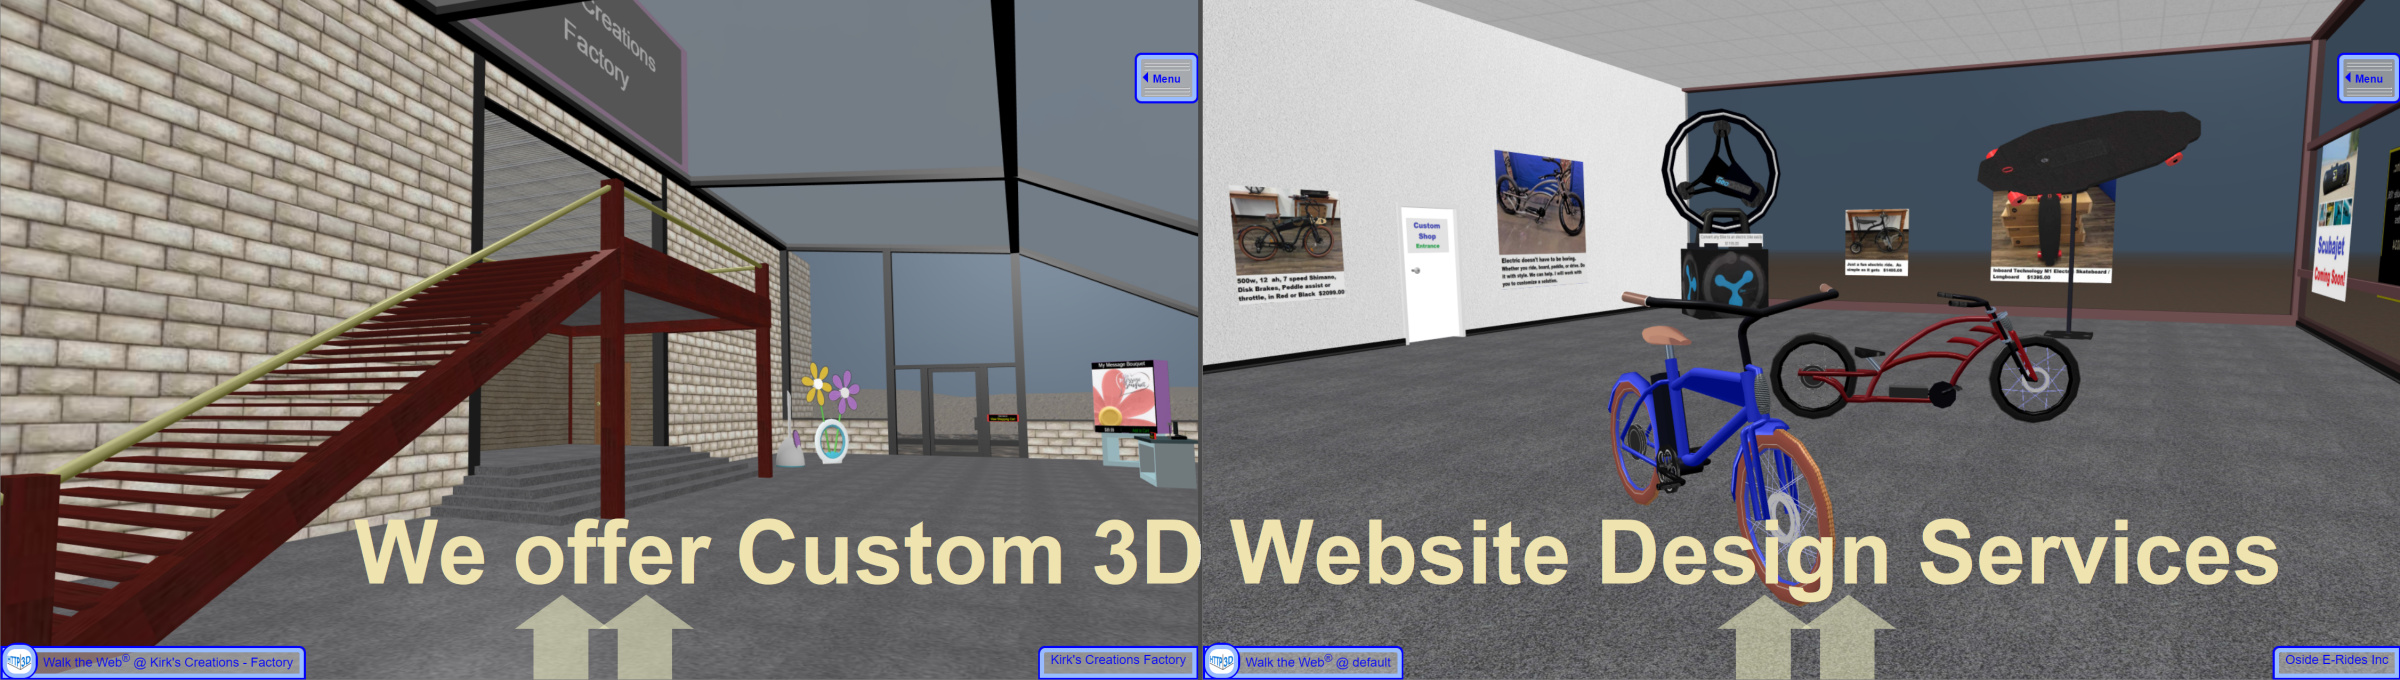 Custom 3D Website Design Services